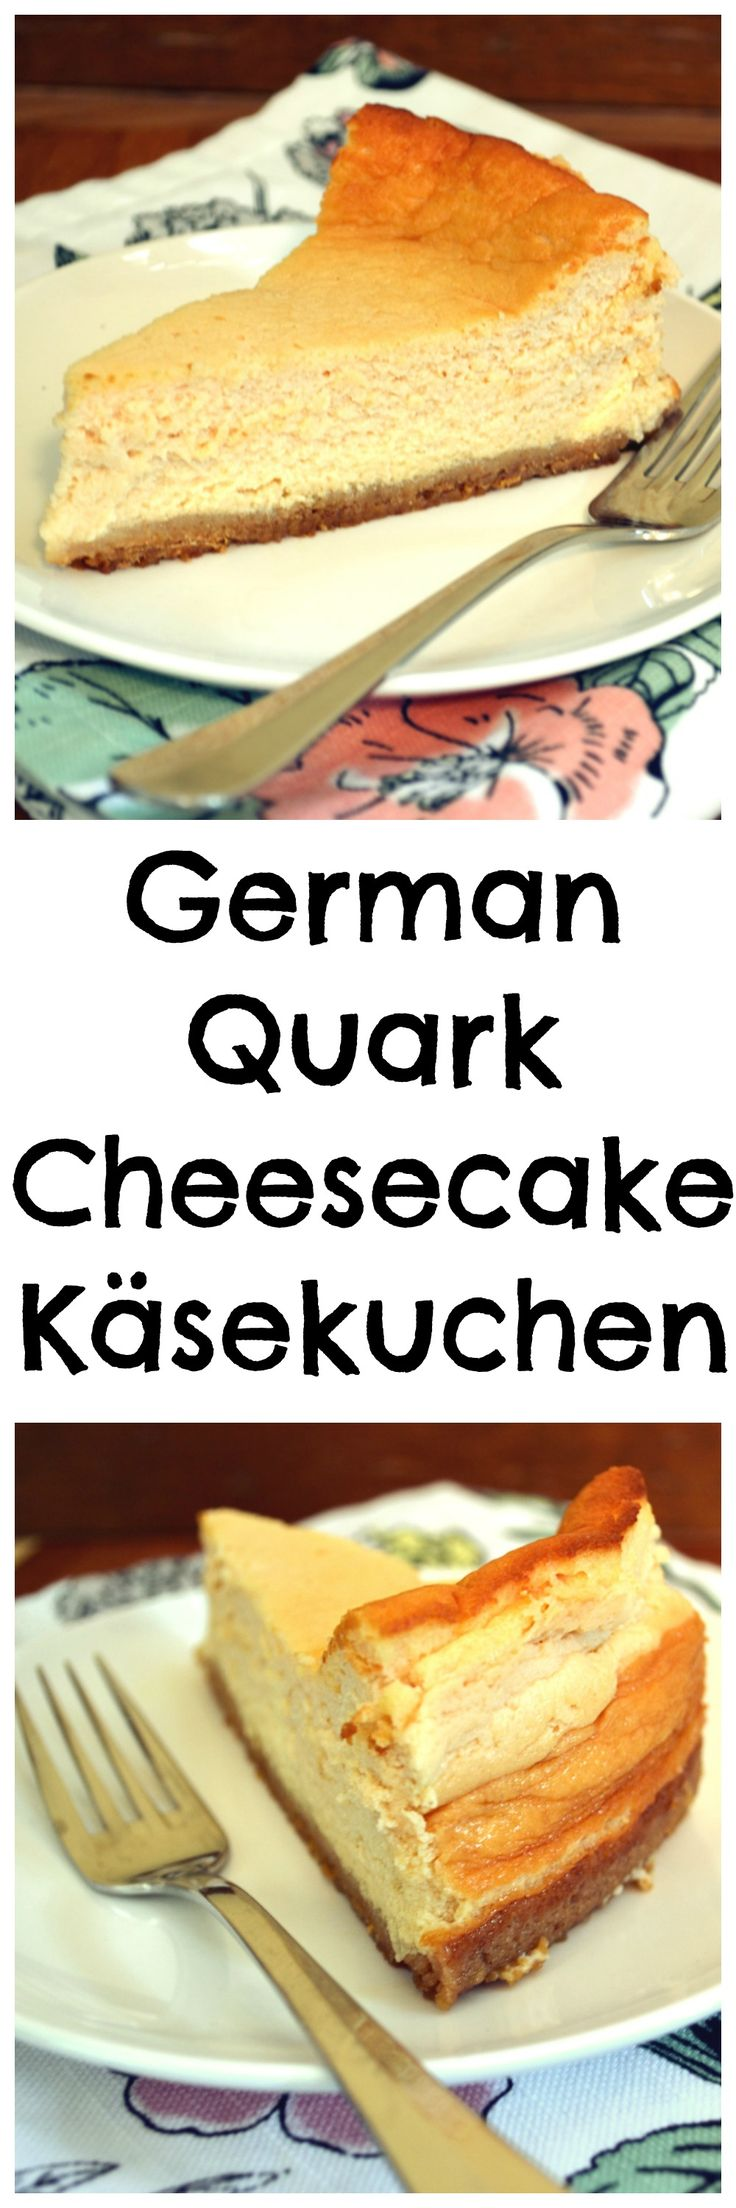 Käsekuchen - a delicious, lightly sweetened German Cheesecake made with quark. It's custard-like texture is much lighter in the mouth and on the waist.